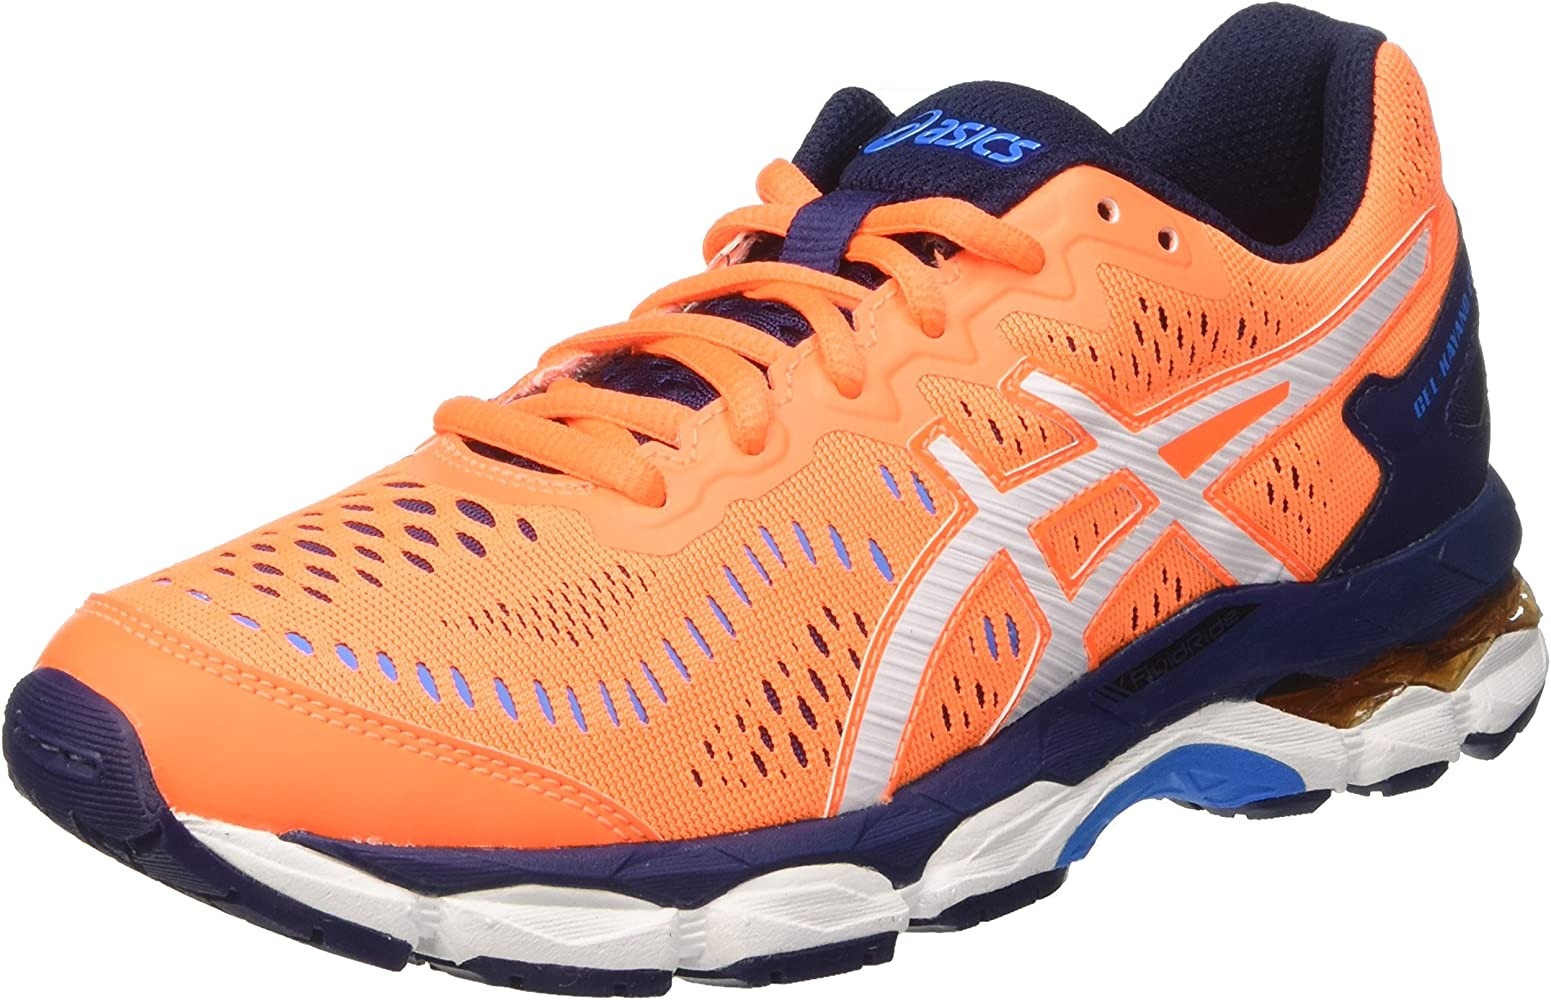 Asics Gel-Kayano 23 GS, Zapatillas de Deporte Infantil, Naranja (Shocking Orange/White/Indigo Blue), 37 EU: Amazon.es: Zapatos y complementos